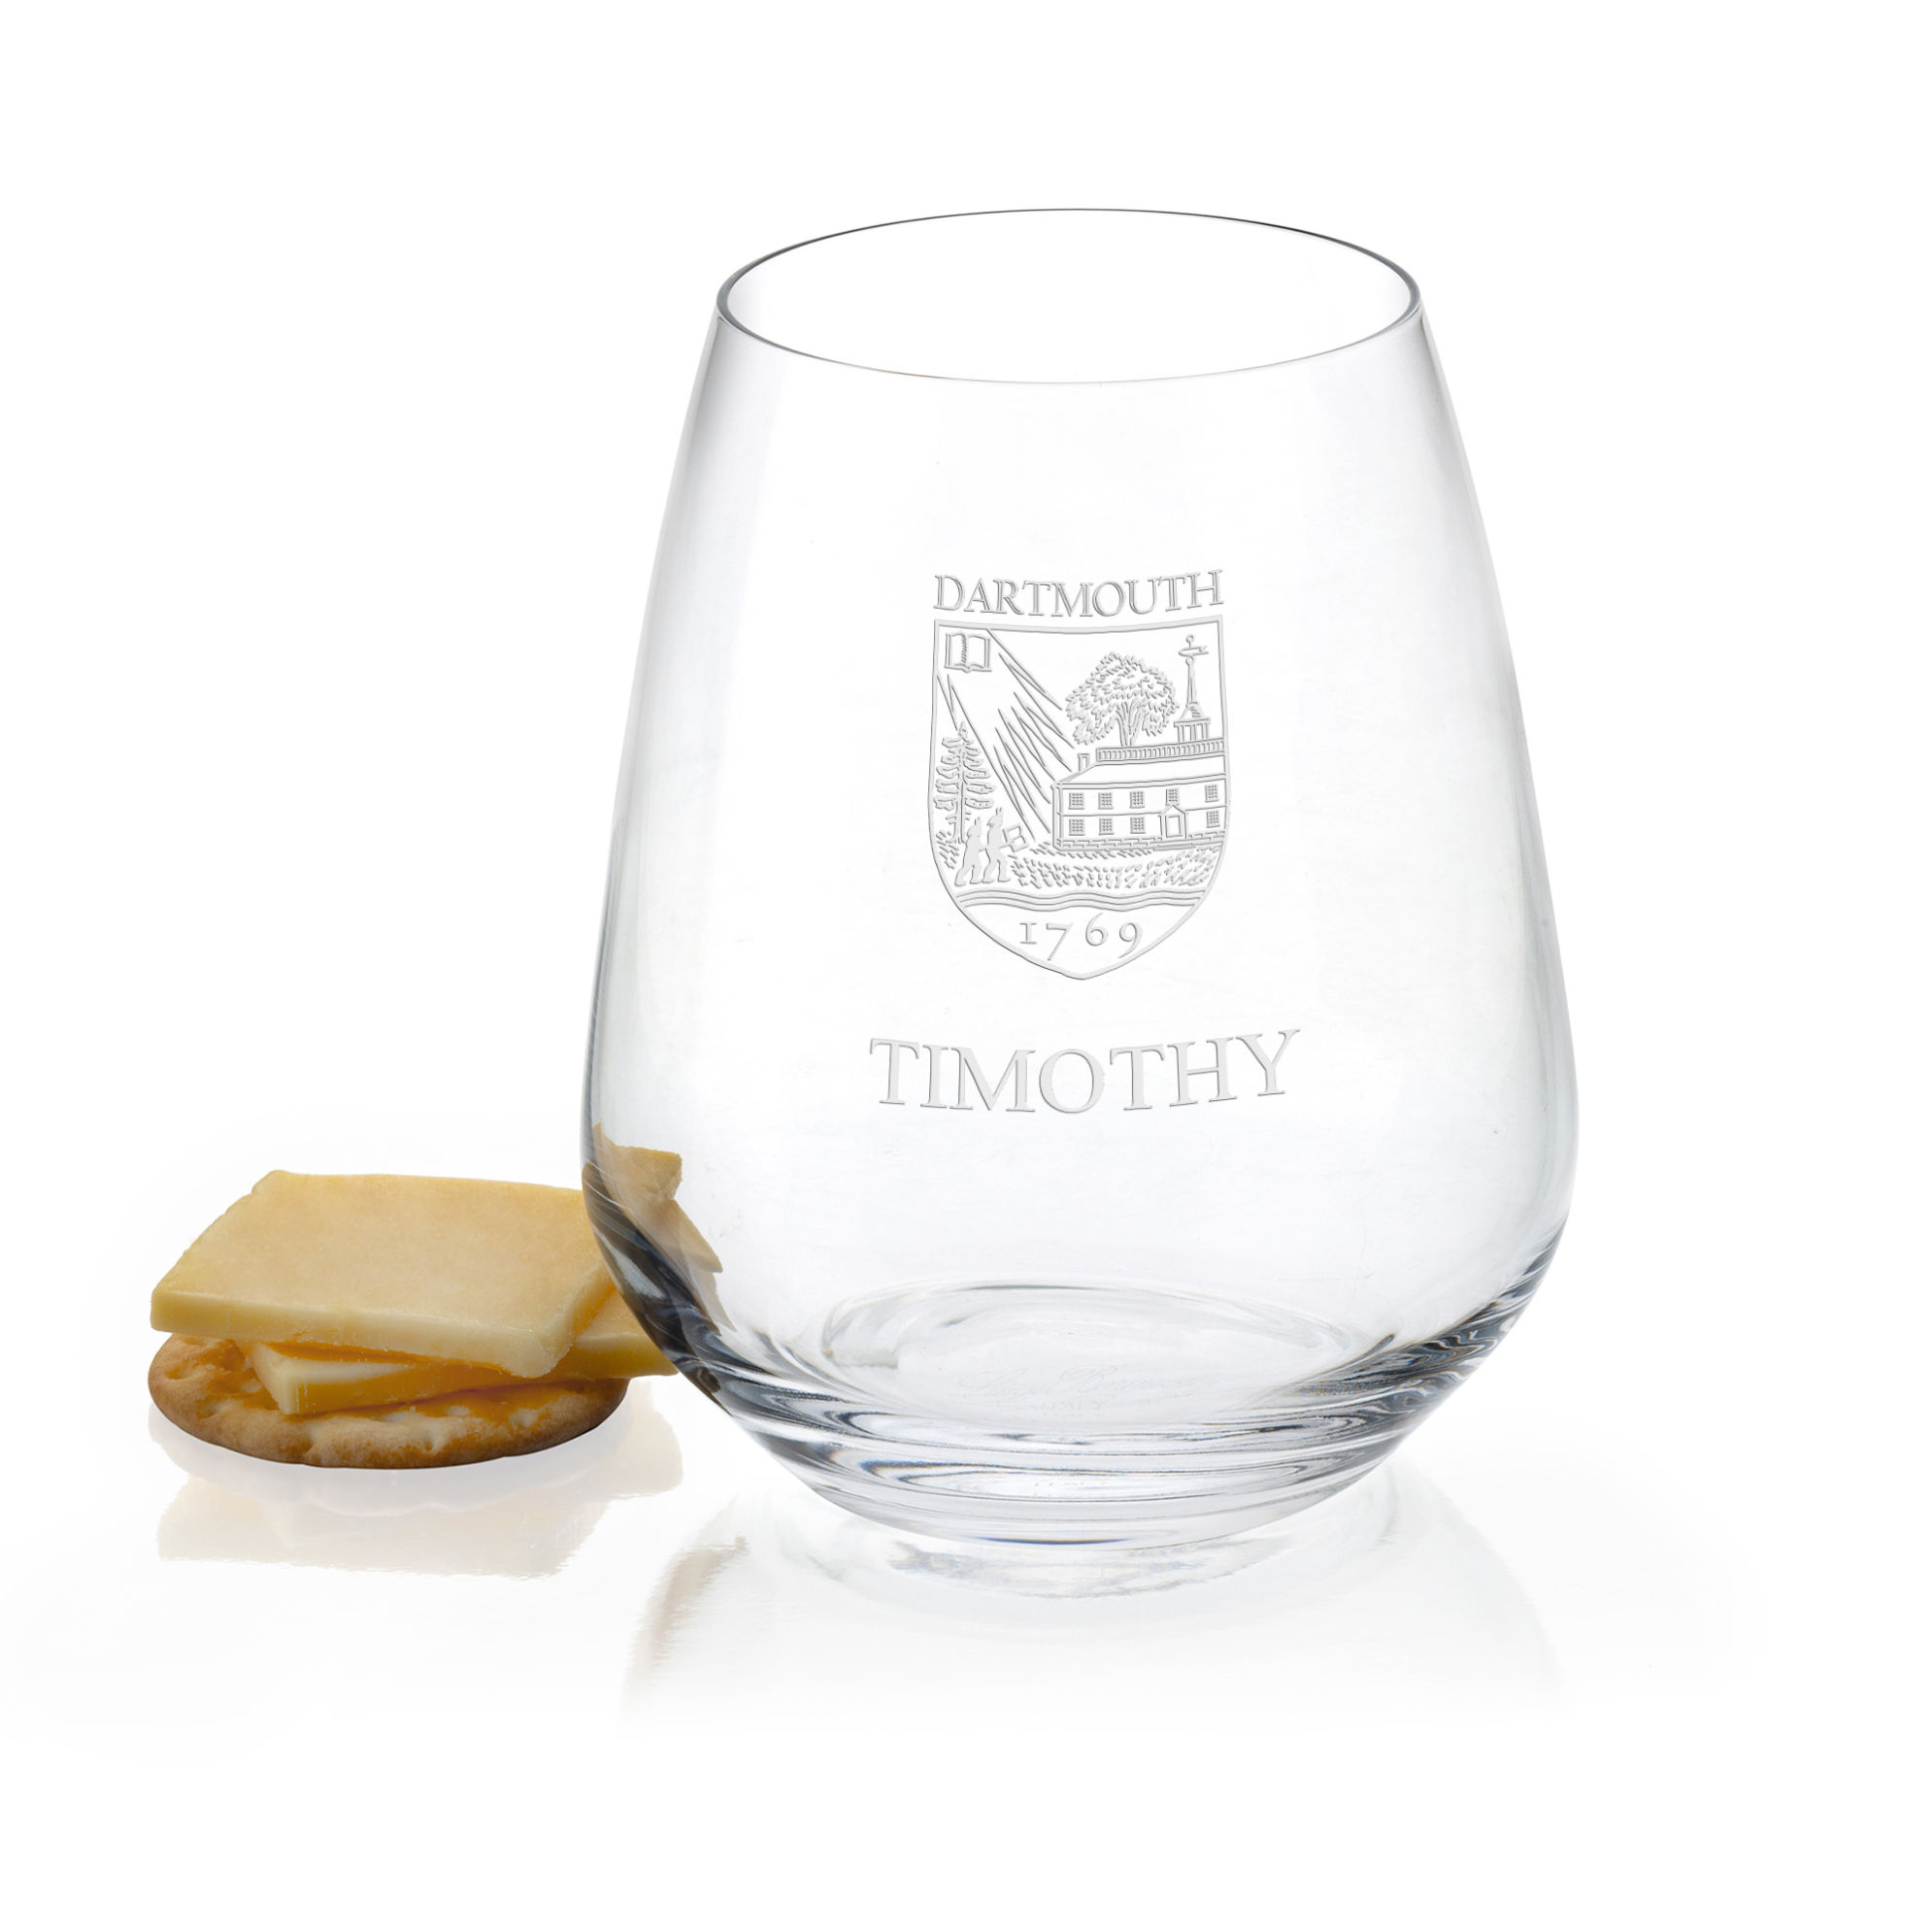 Dartmouth College Stemless Wine Glasses - Set of 4